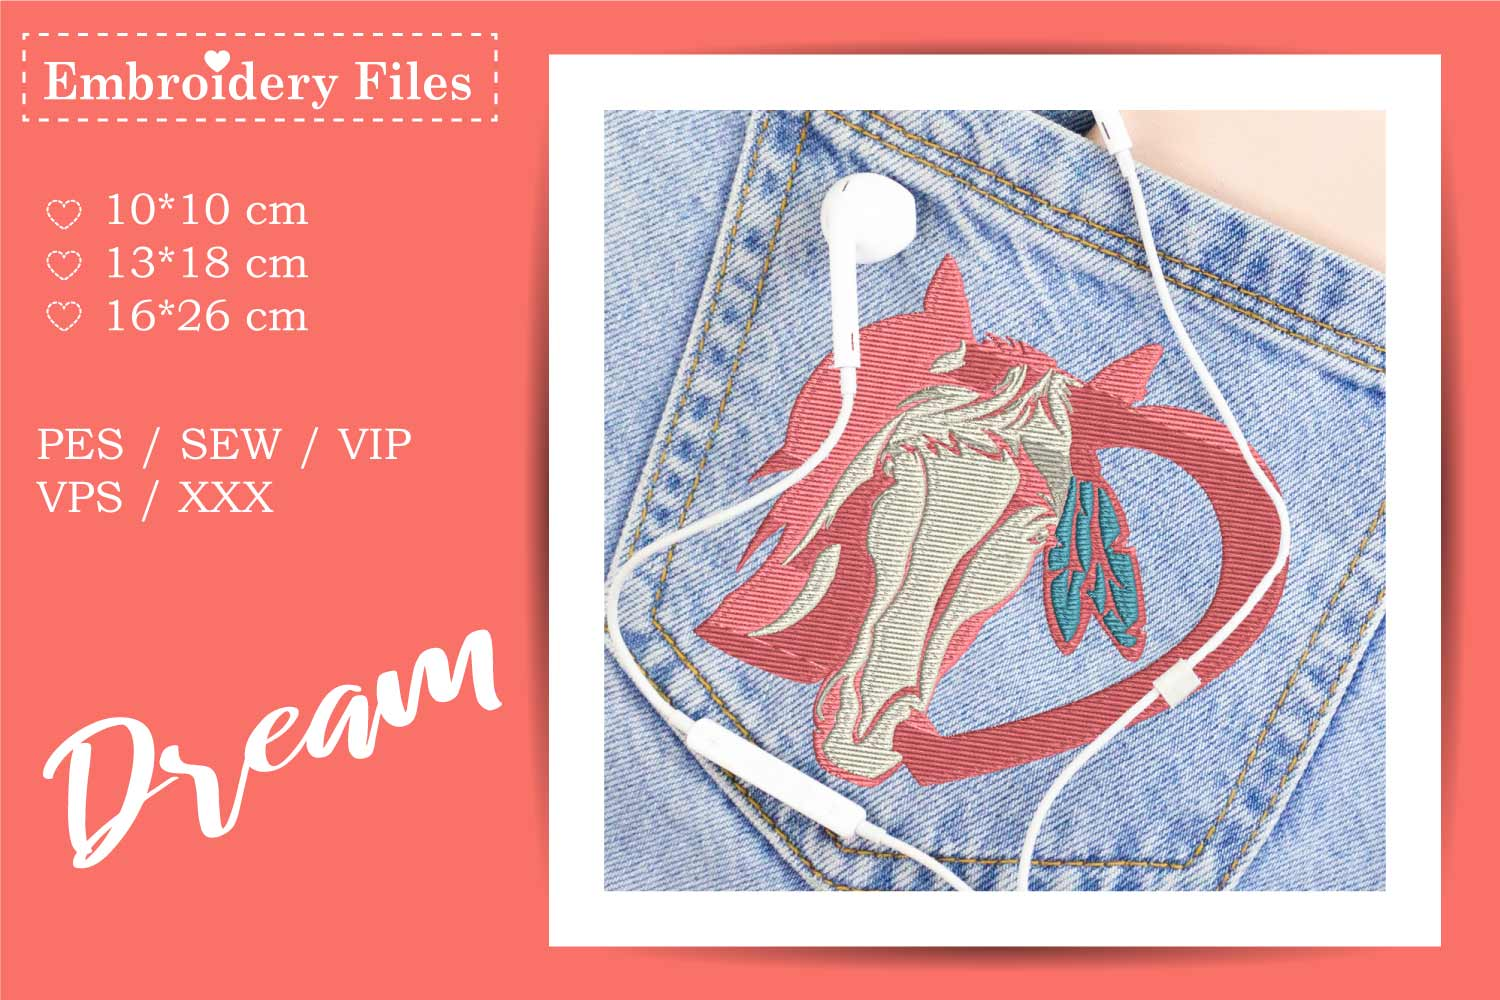 Horse in a Heart - Embroidery File example image 2